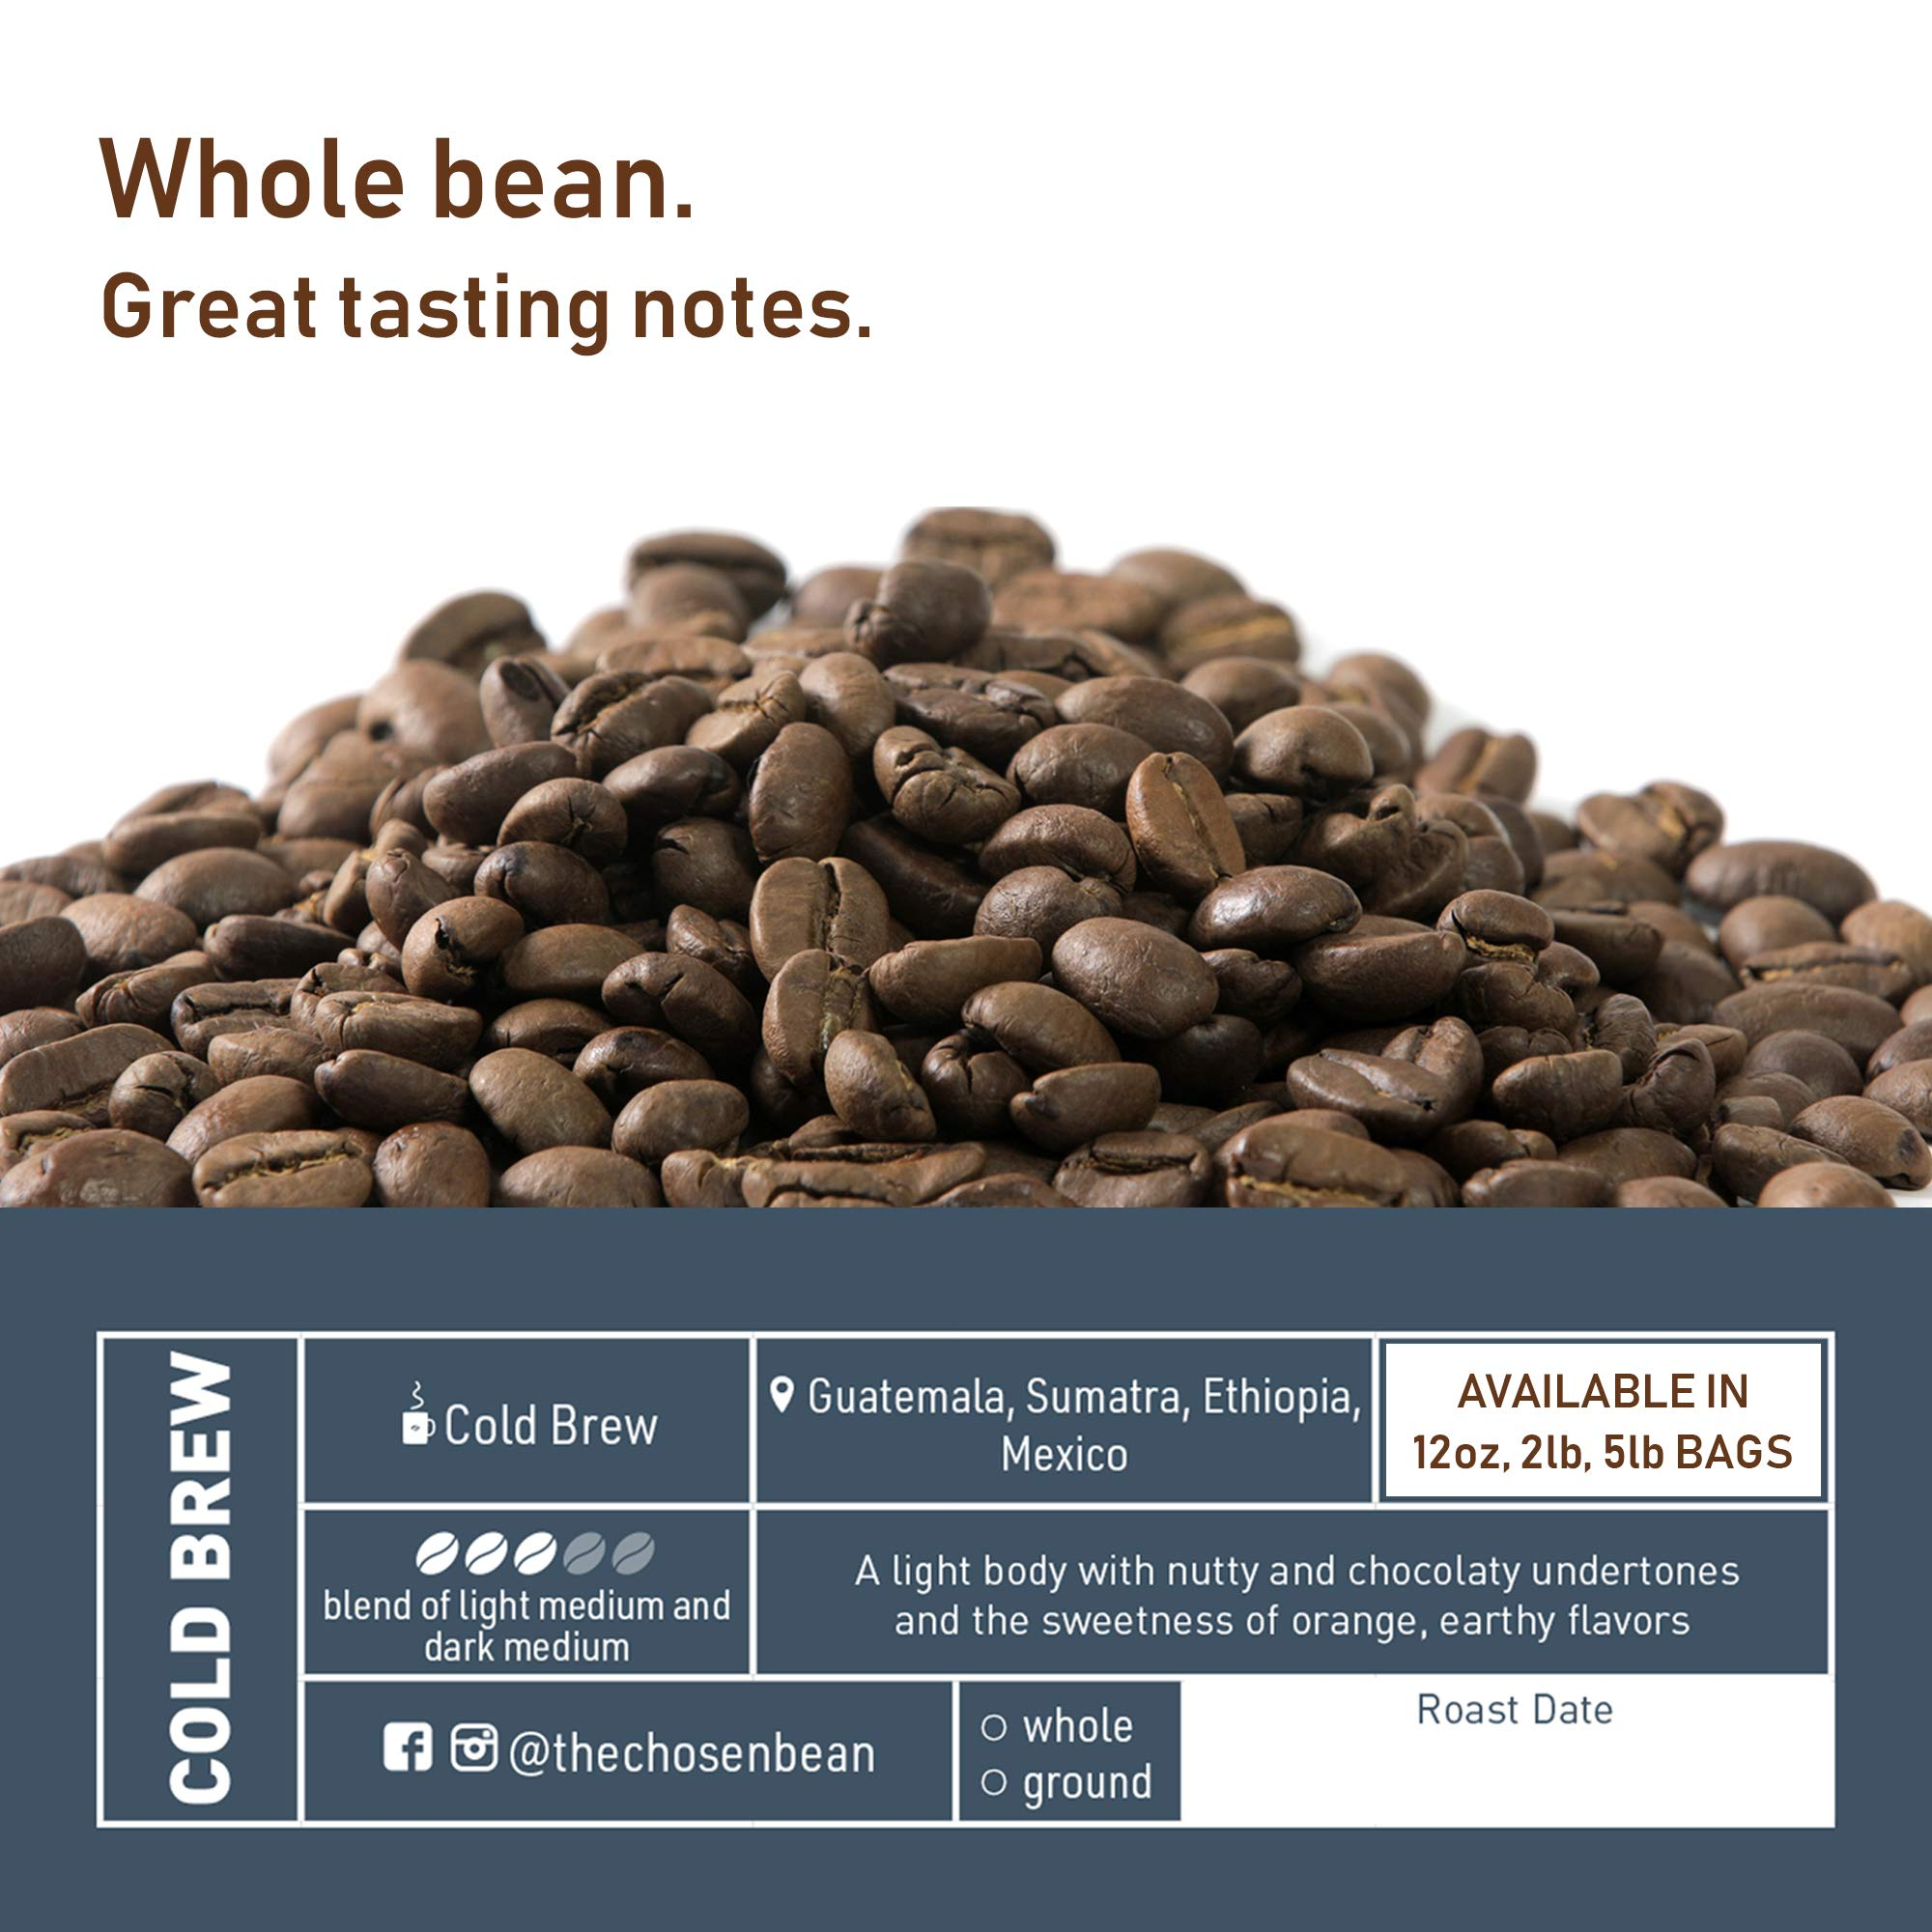 Cold Brew Coffee Solution Specialty Coffee Beans (Whole Bean, 5LB) by The Chosen Bean (Image #2)